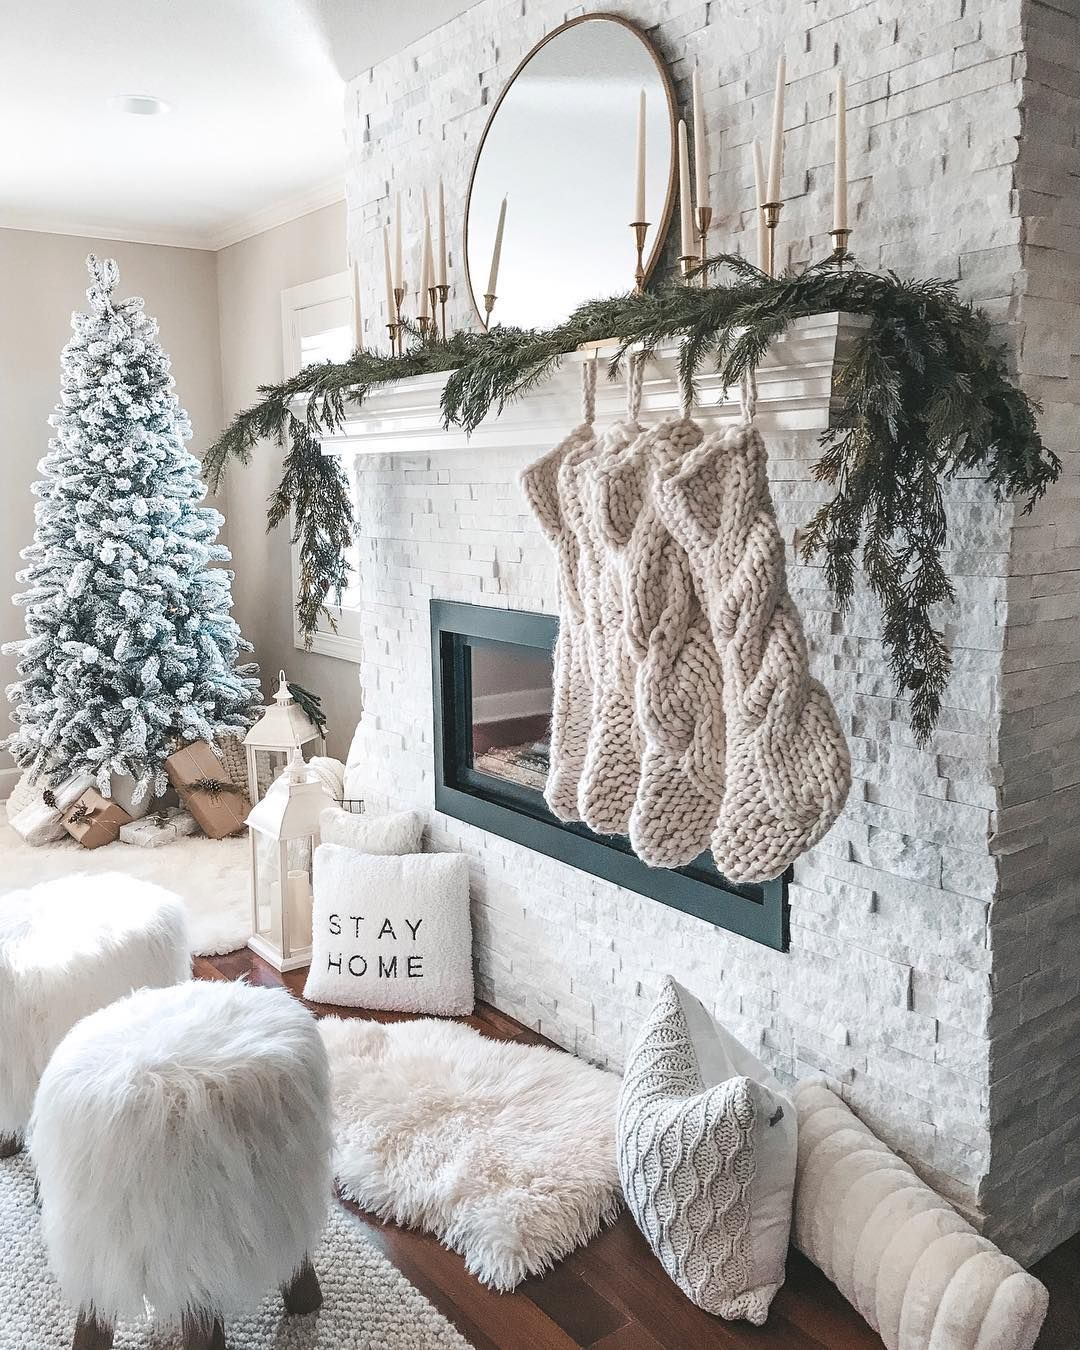 Becky Hillyard Cella Jane On Instagram Tonight S Agenda Cozied Up By The Fireplace With Some Wine And A Good Book What S Your Plan Shop My H With Images Decor